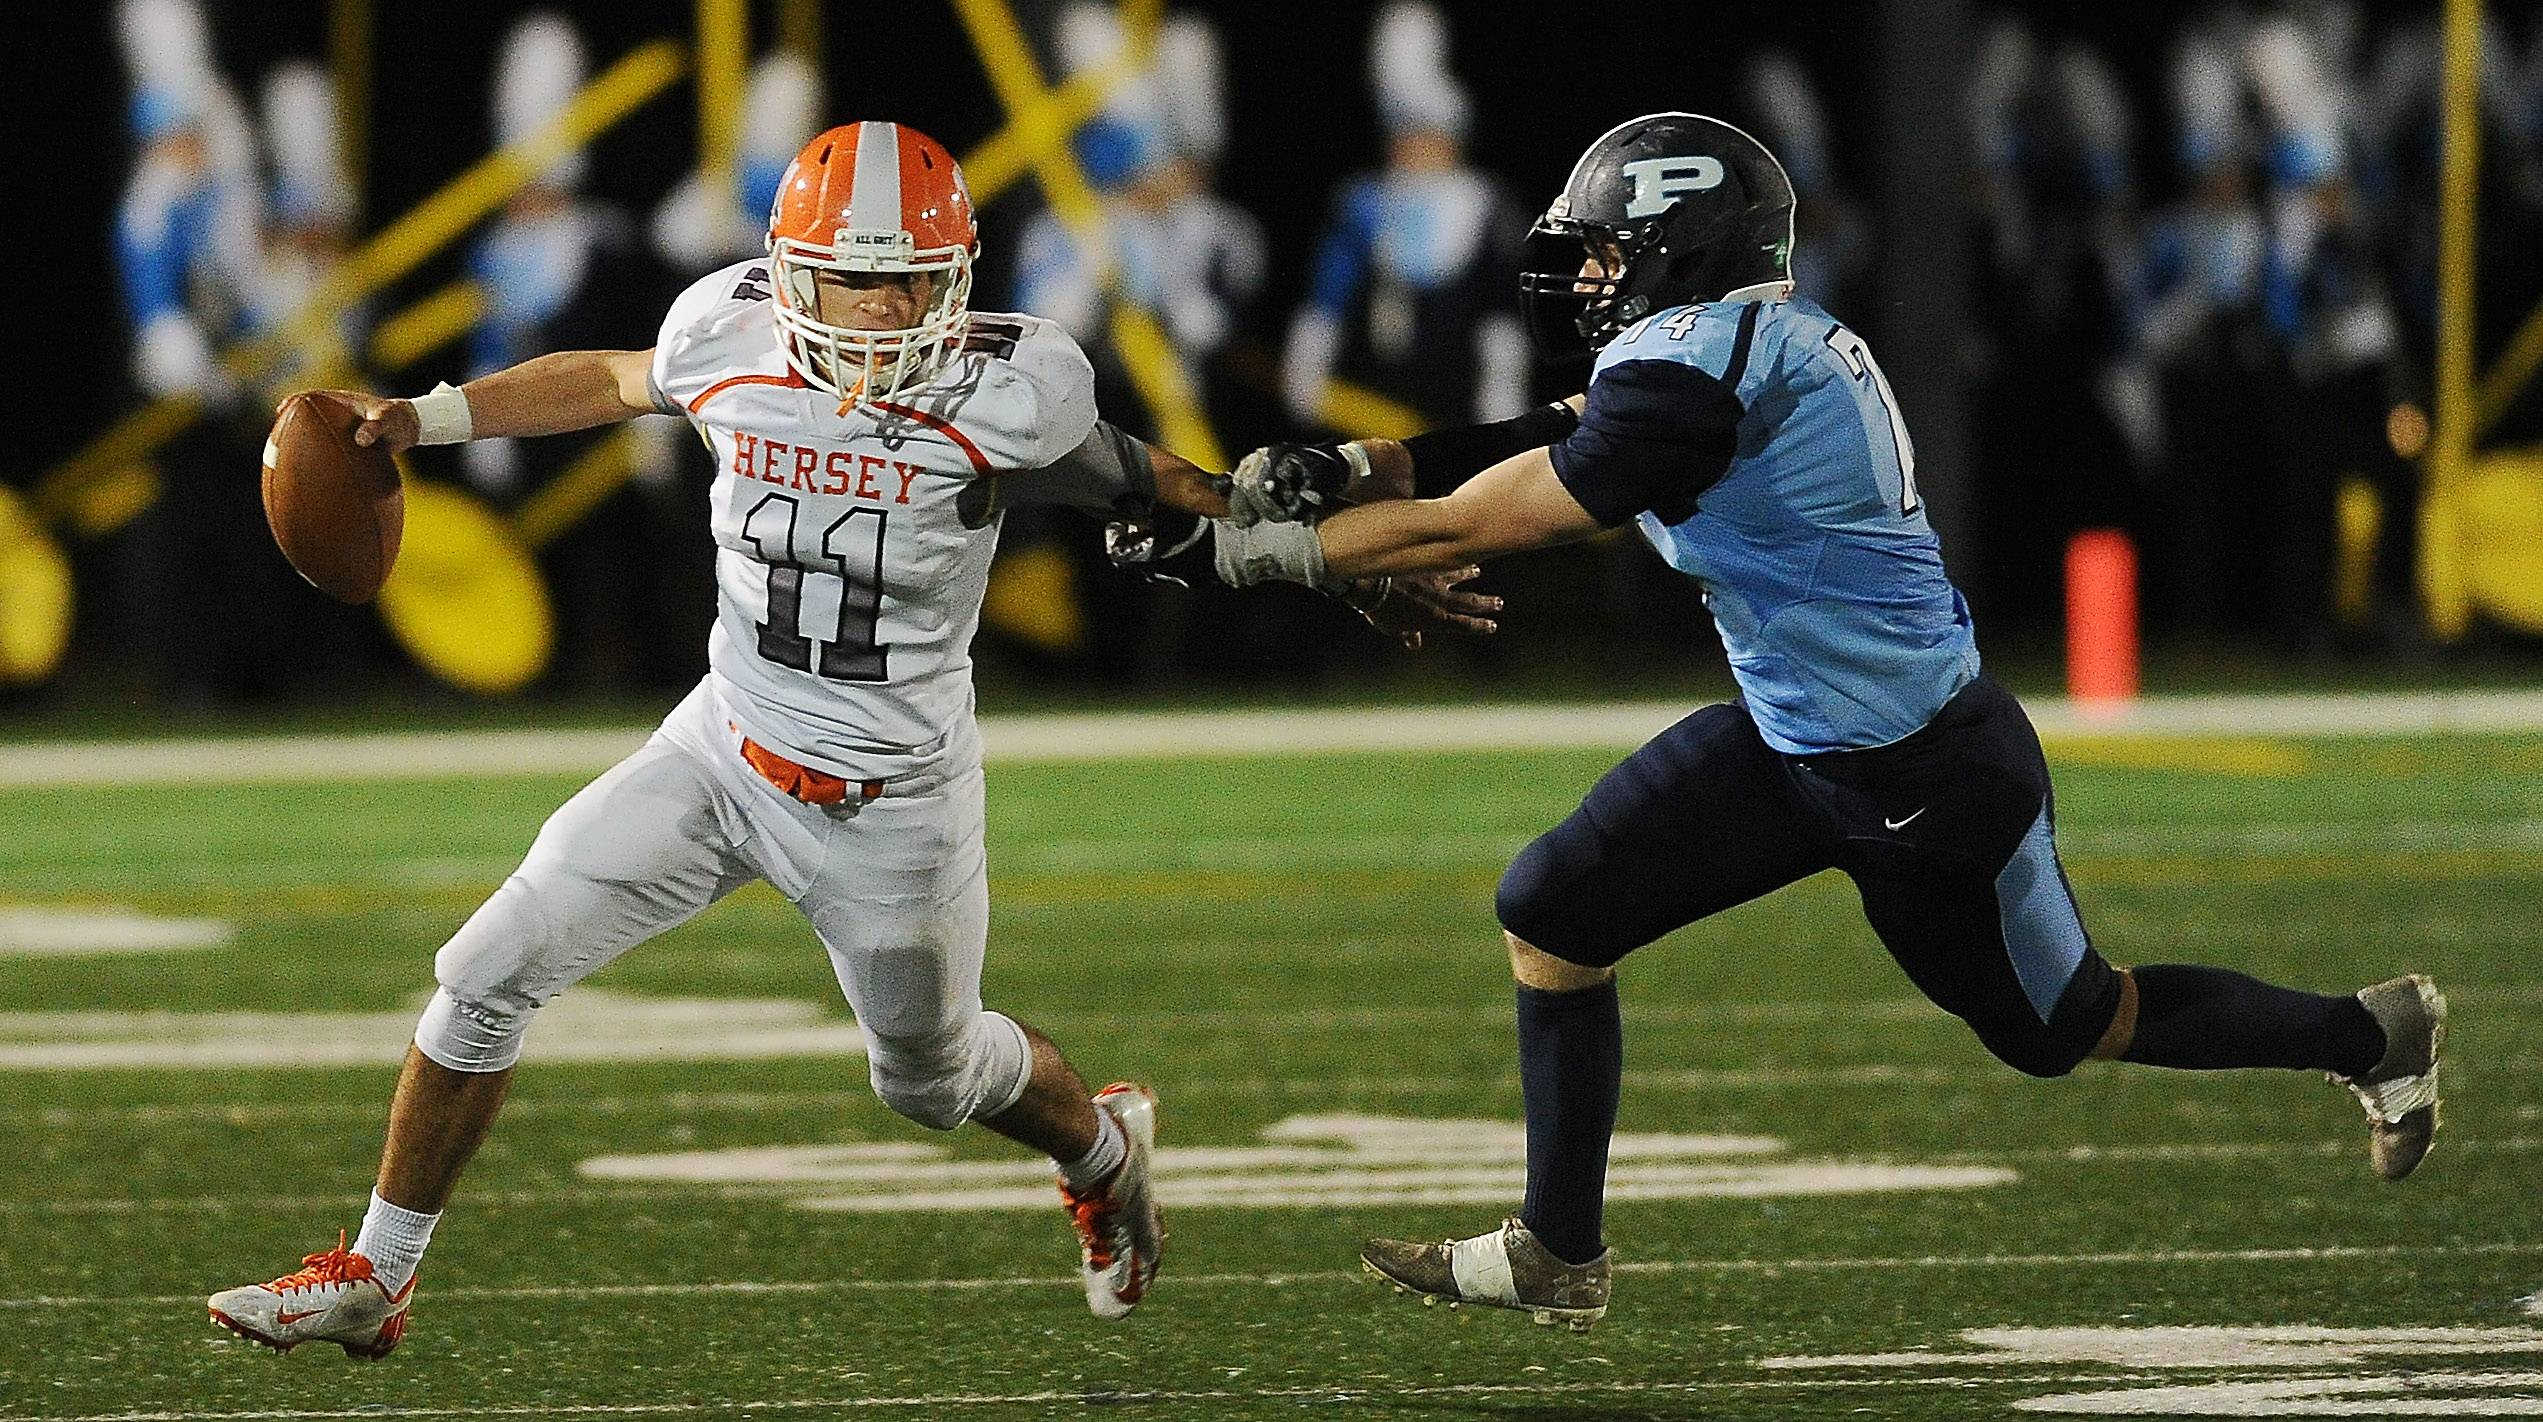 Hersey quarterback Owen Goldsberry shakes loose from Prospect defender Luke Reinhardt on Friday at Prospect.